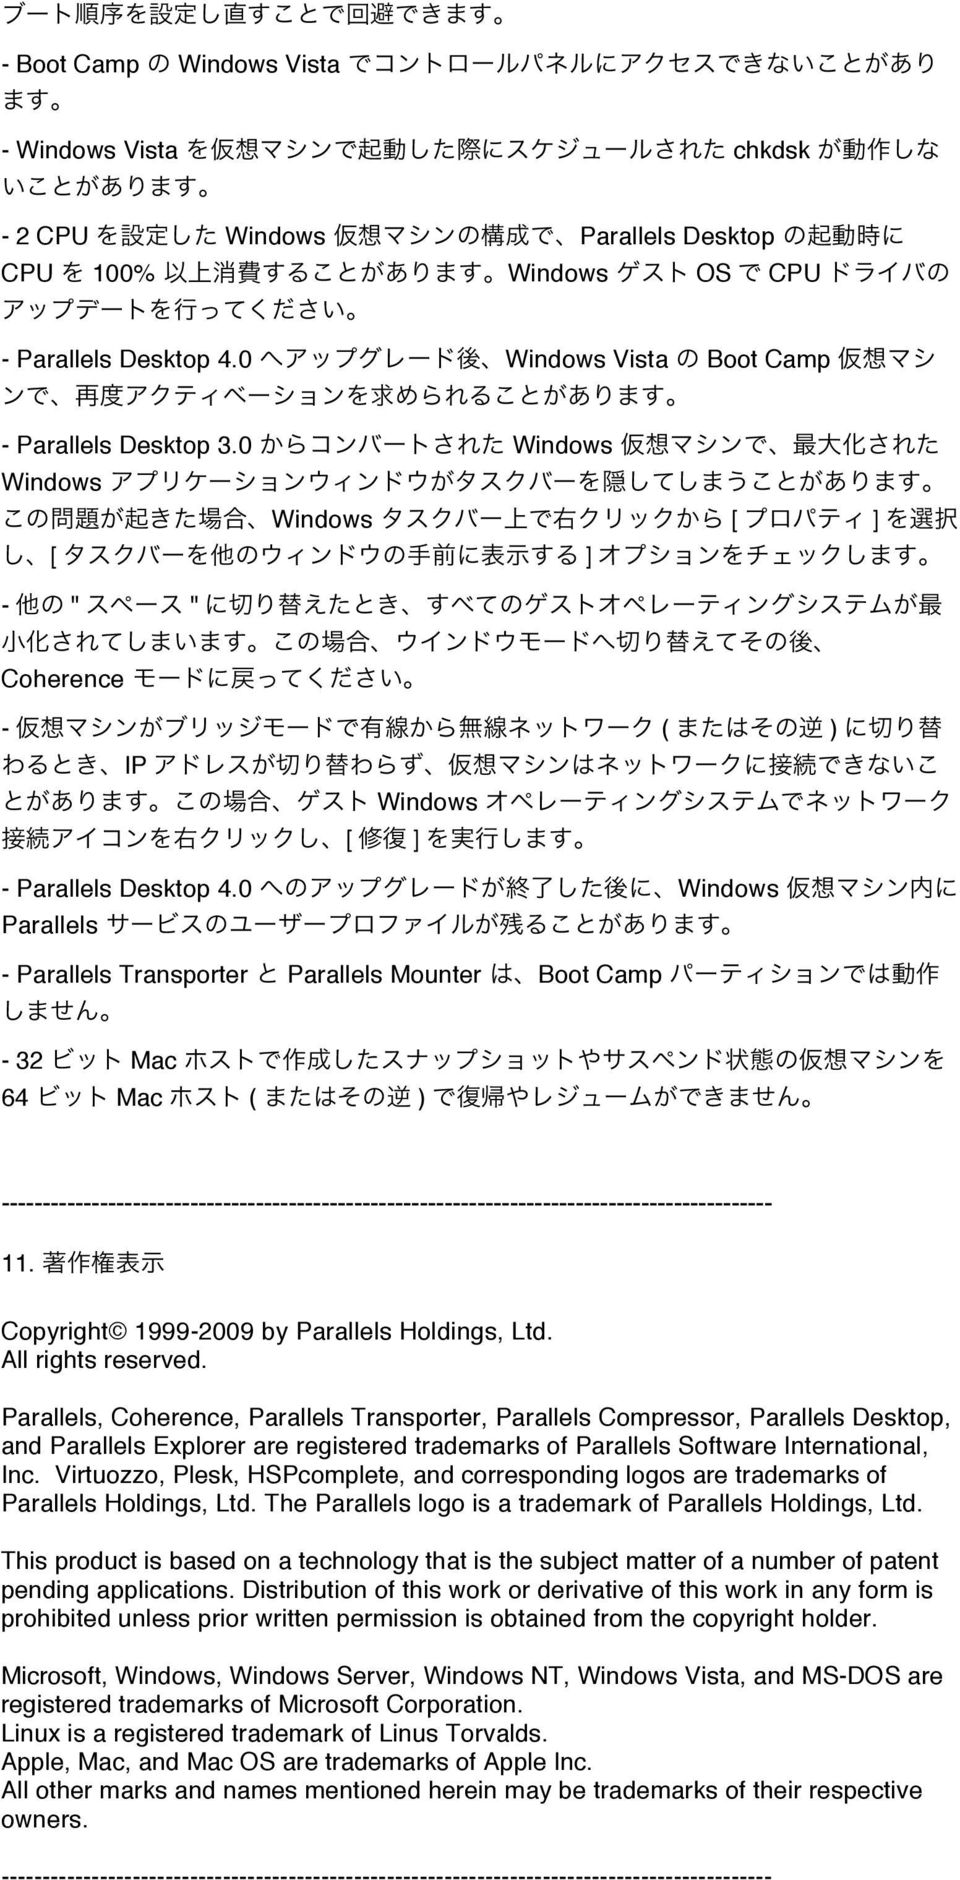 Copyright 1999-2009 by Parallels Holdings, Ltd. All rights reserved.